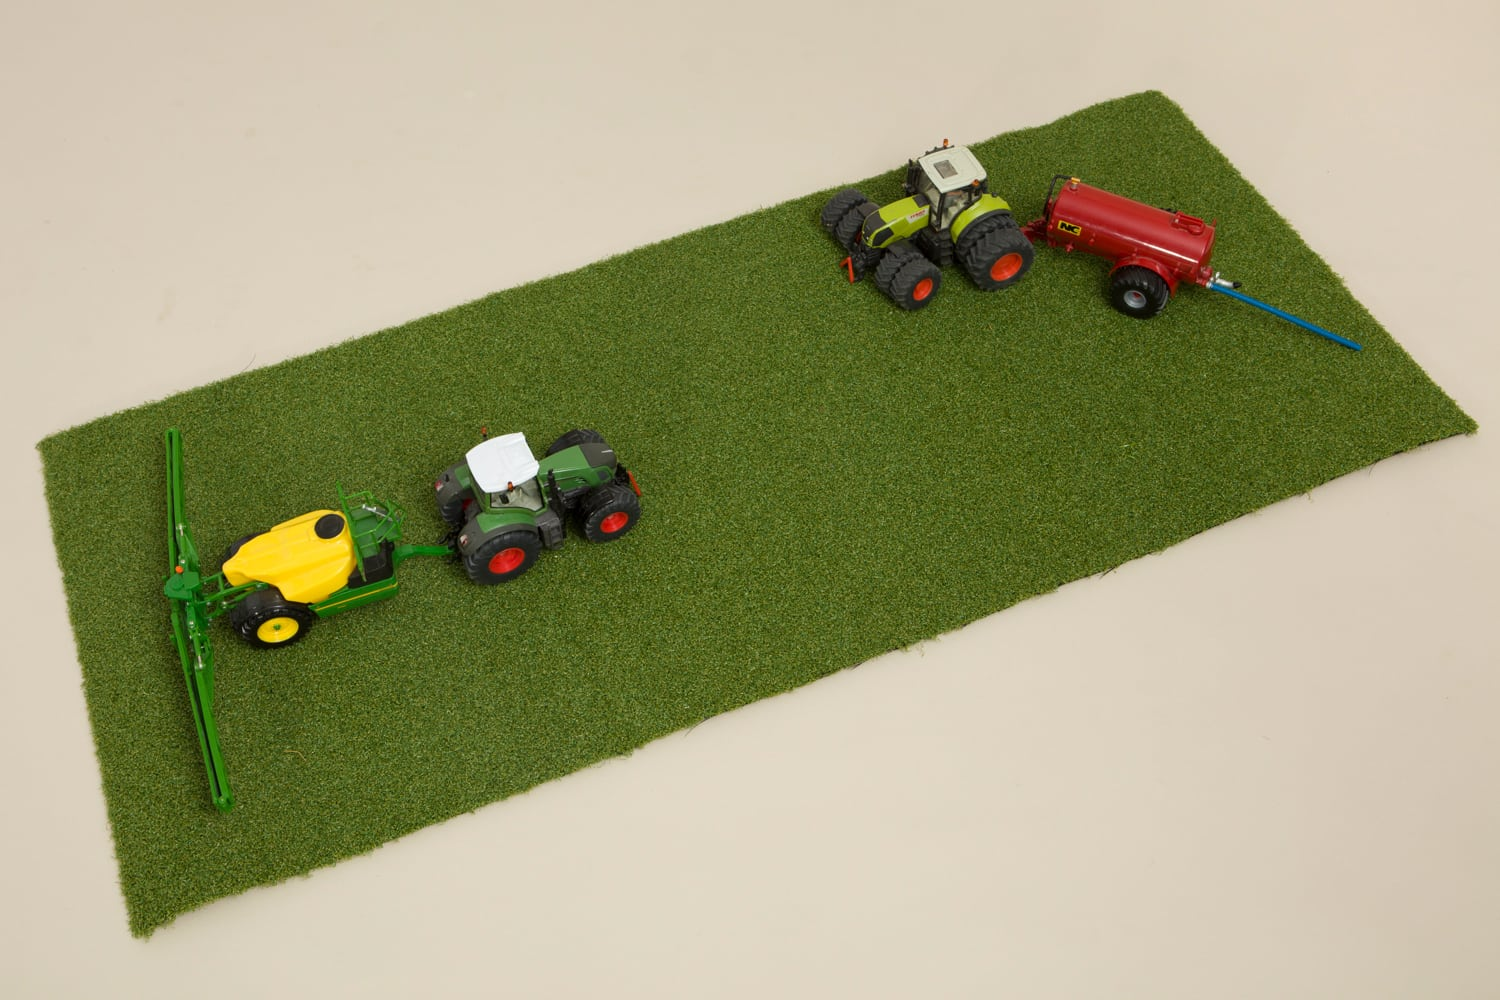 The Field Grass Roll